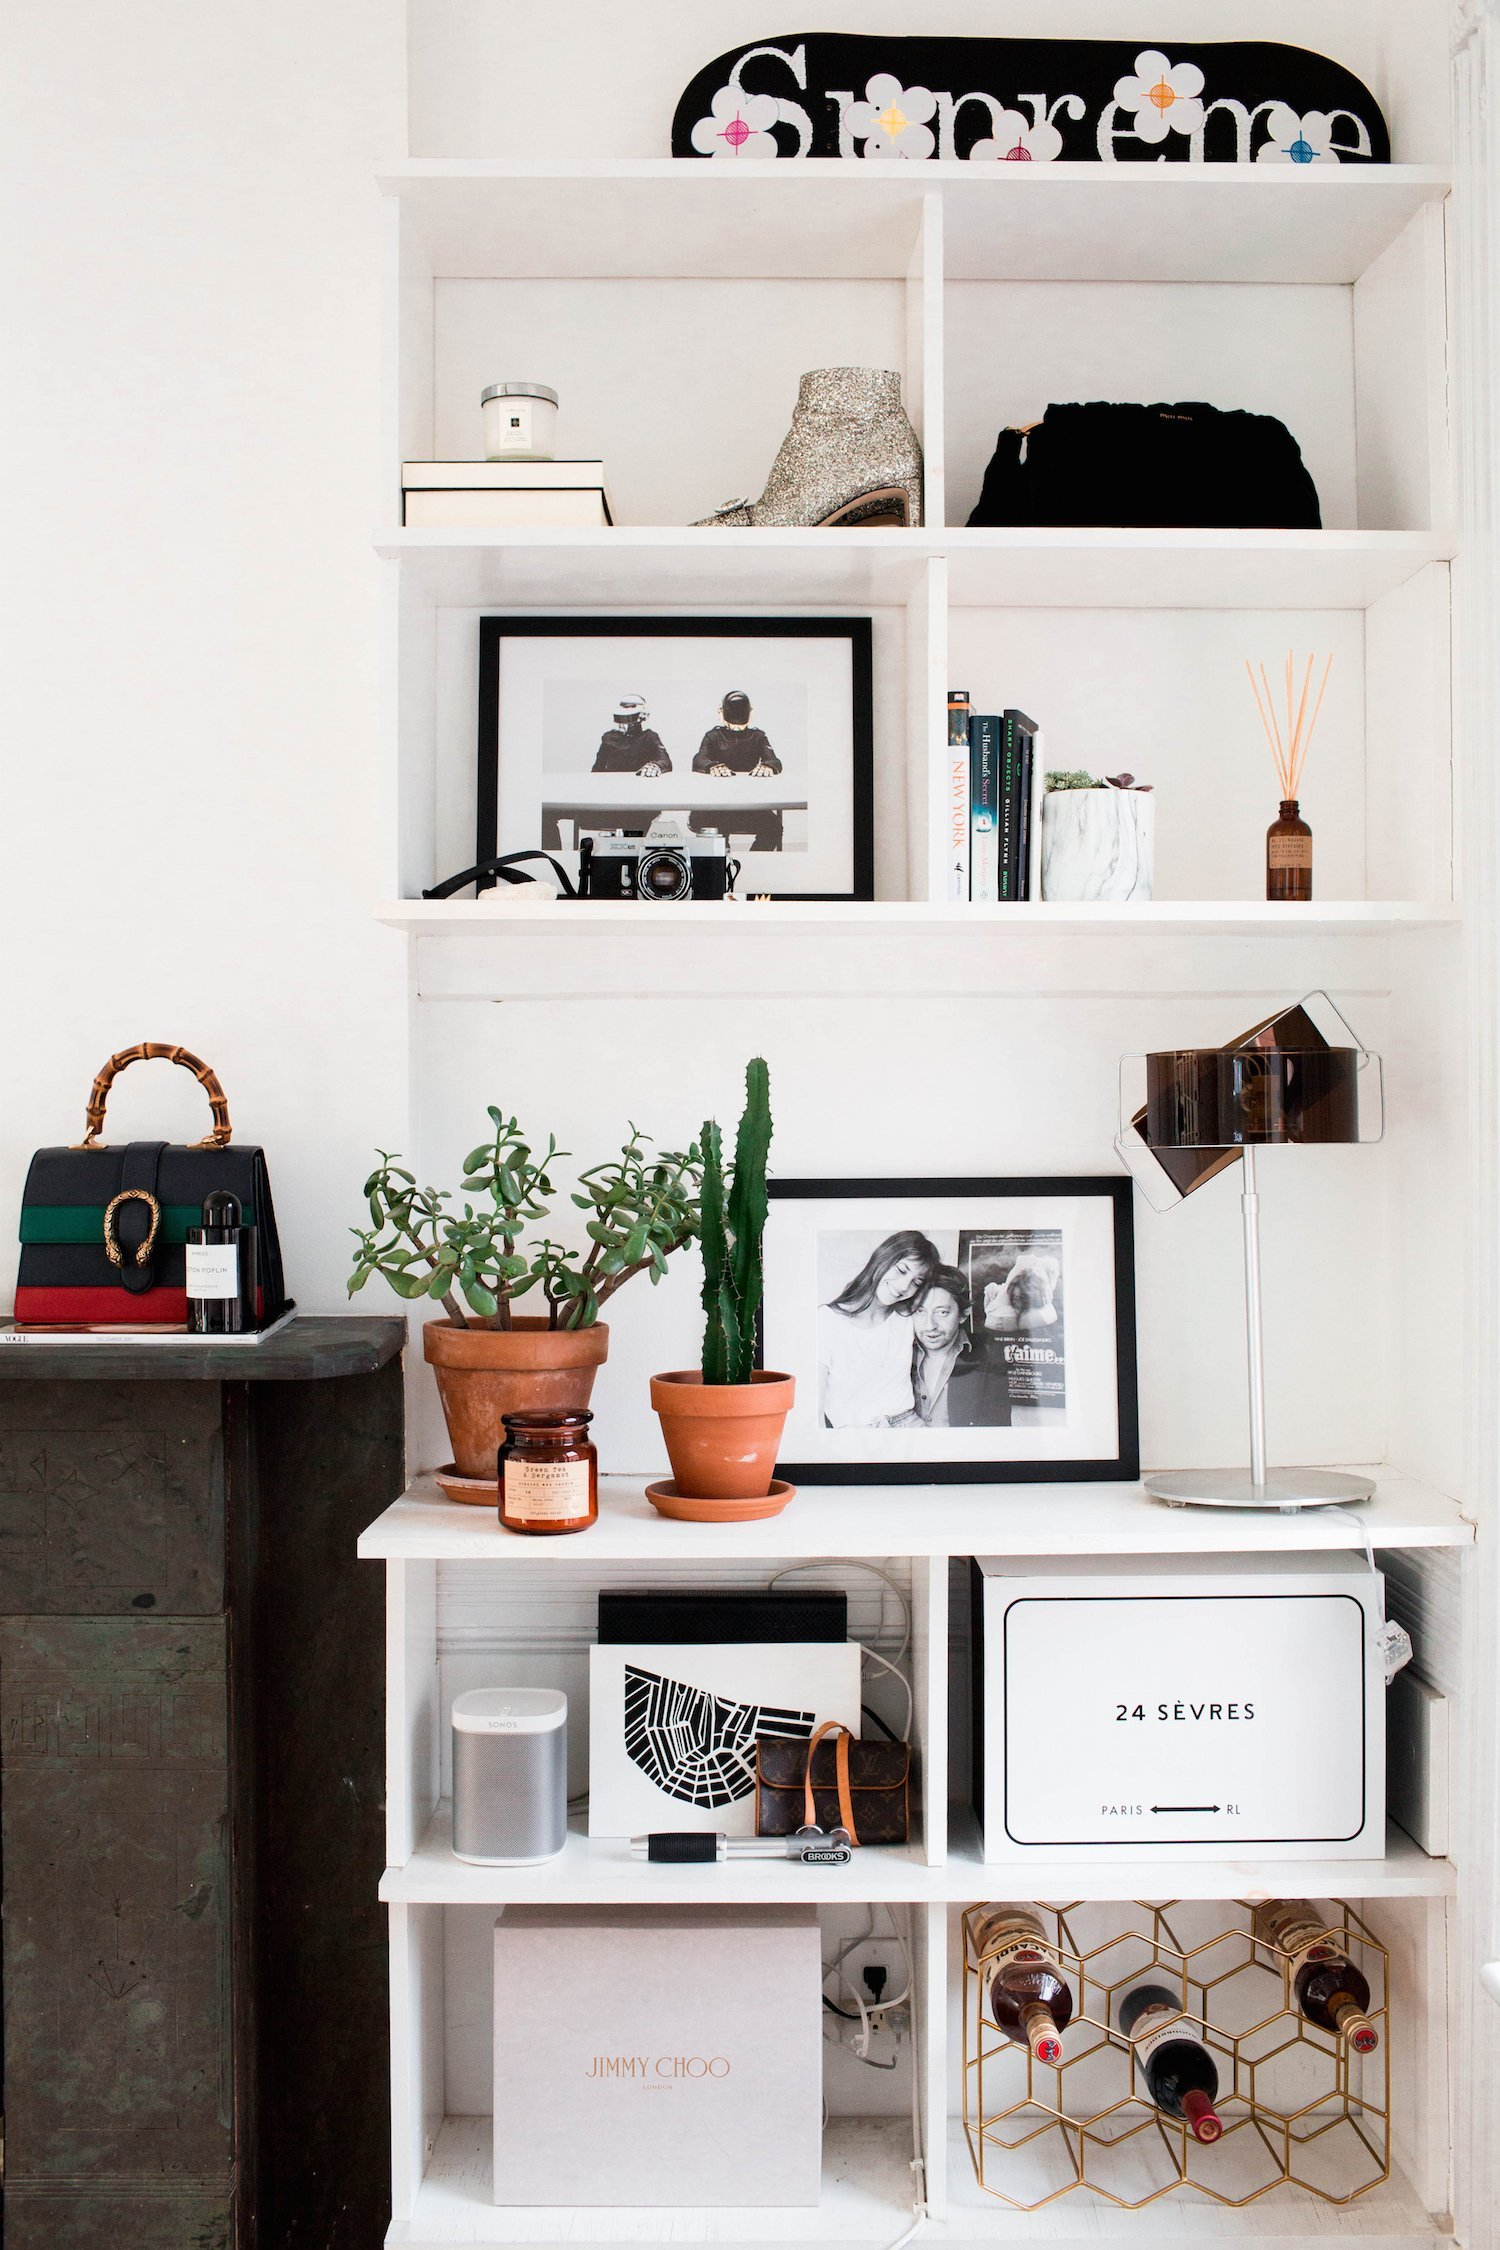 http://rebeccalaurey.com/2018/03/06/a-look-into-my-nyc-apartment